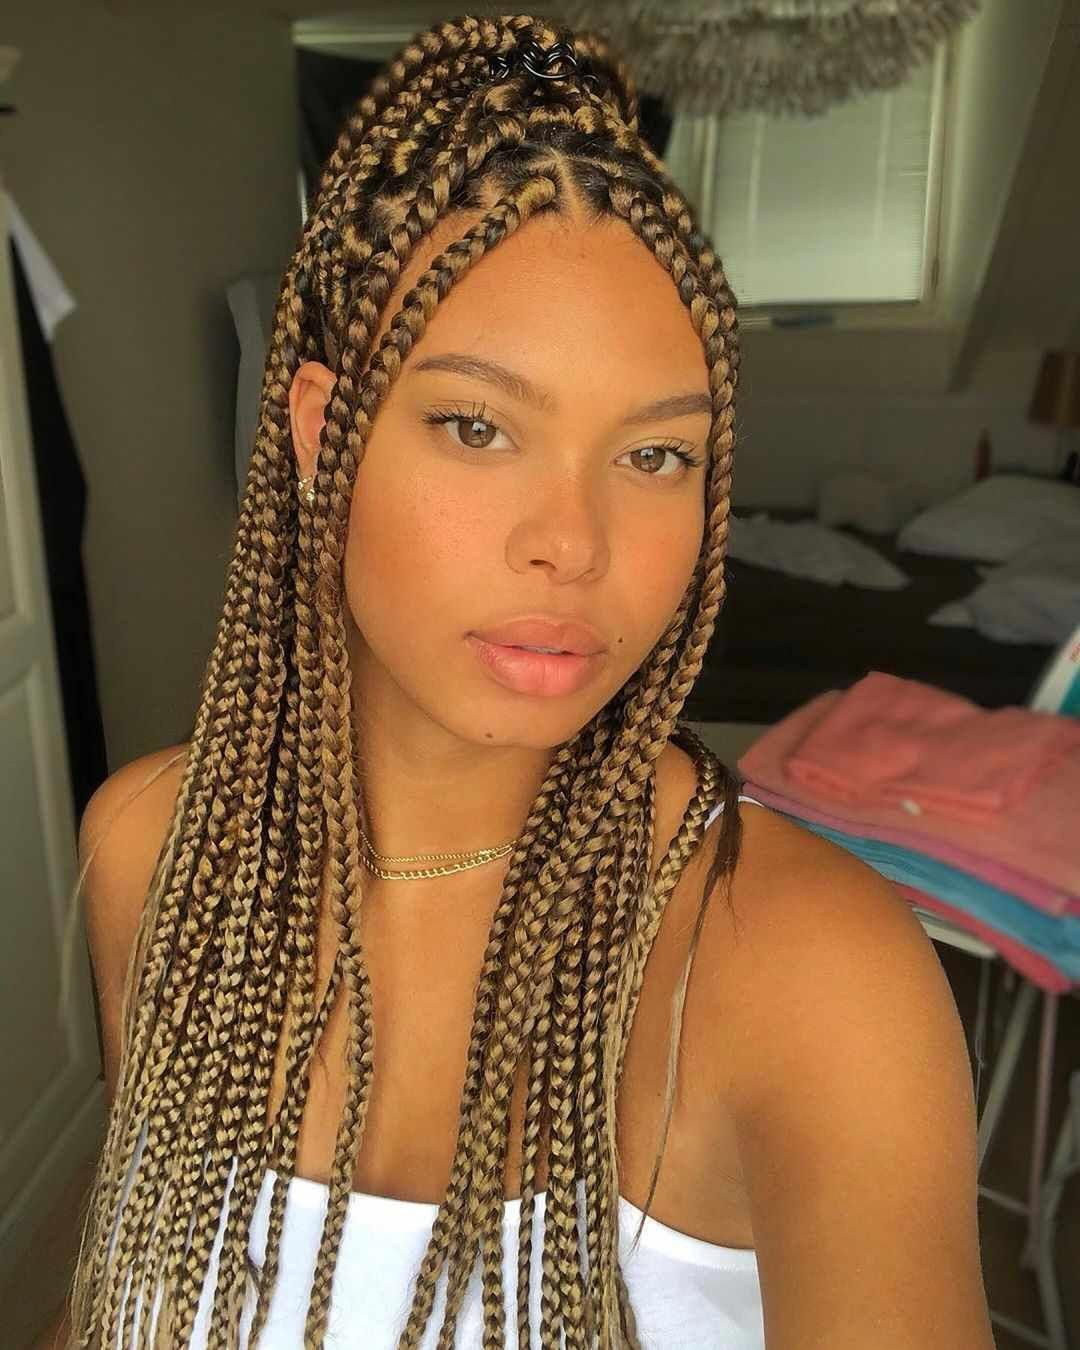 30 Most Popular Crochet Box Braids Hairstyles for Black